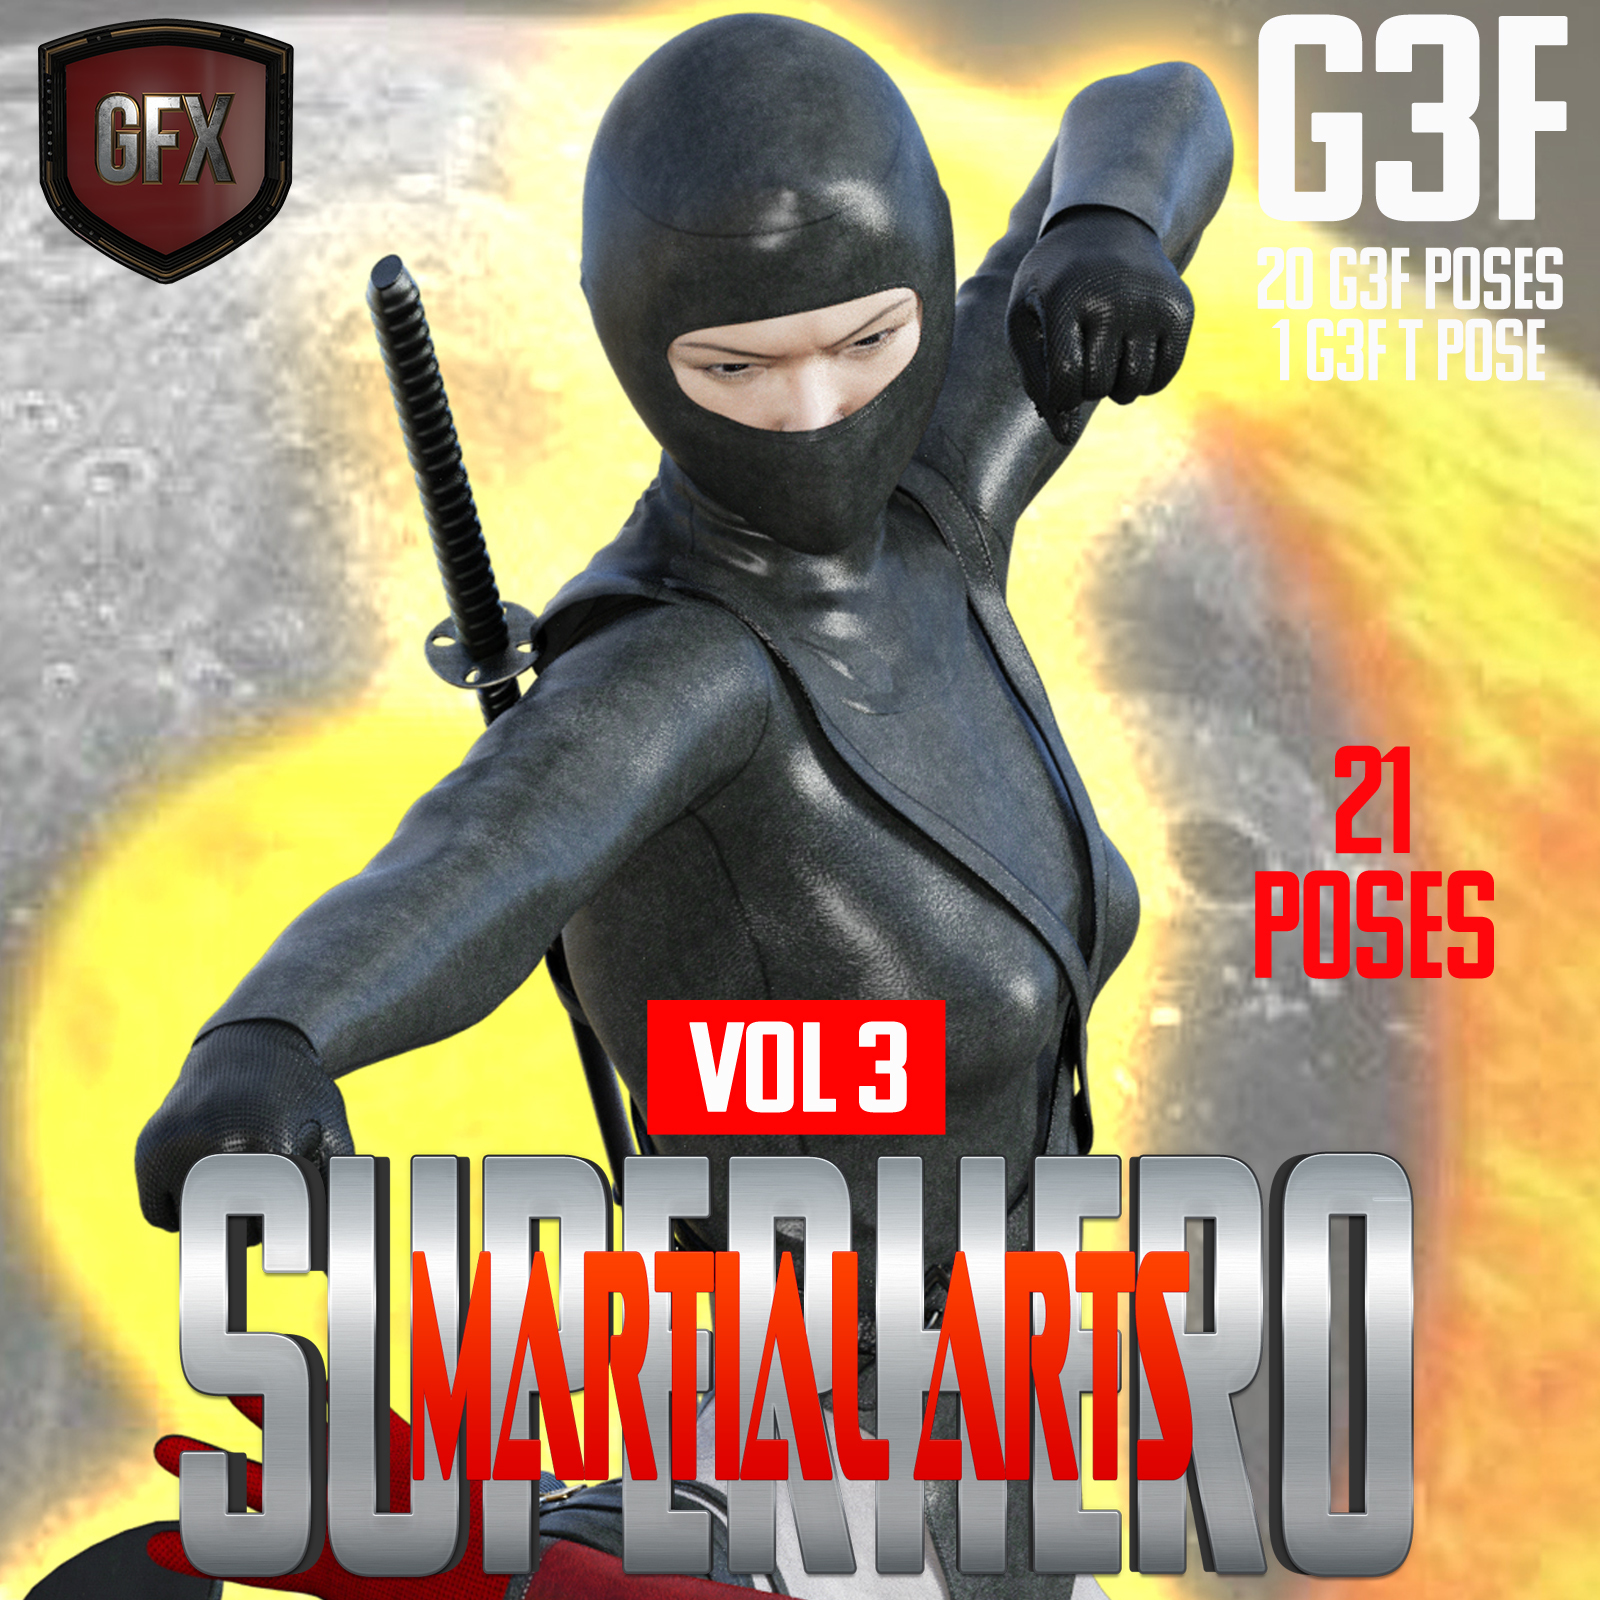 SuperHero Martial Arts for G3F Volume 3 by GriffinFX